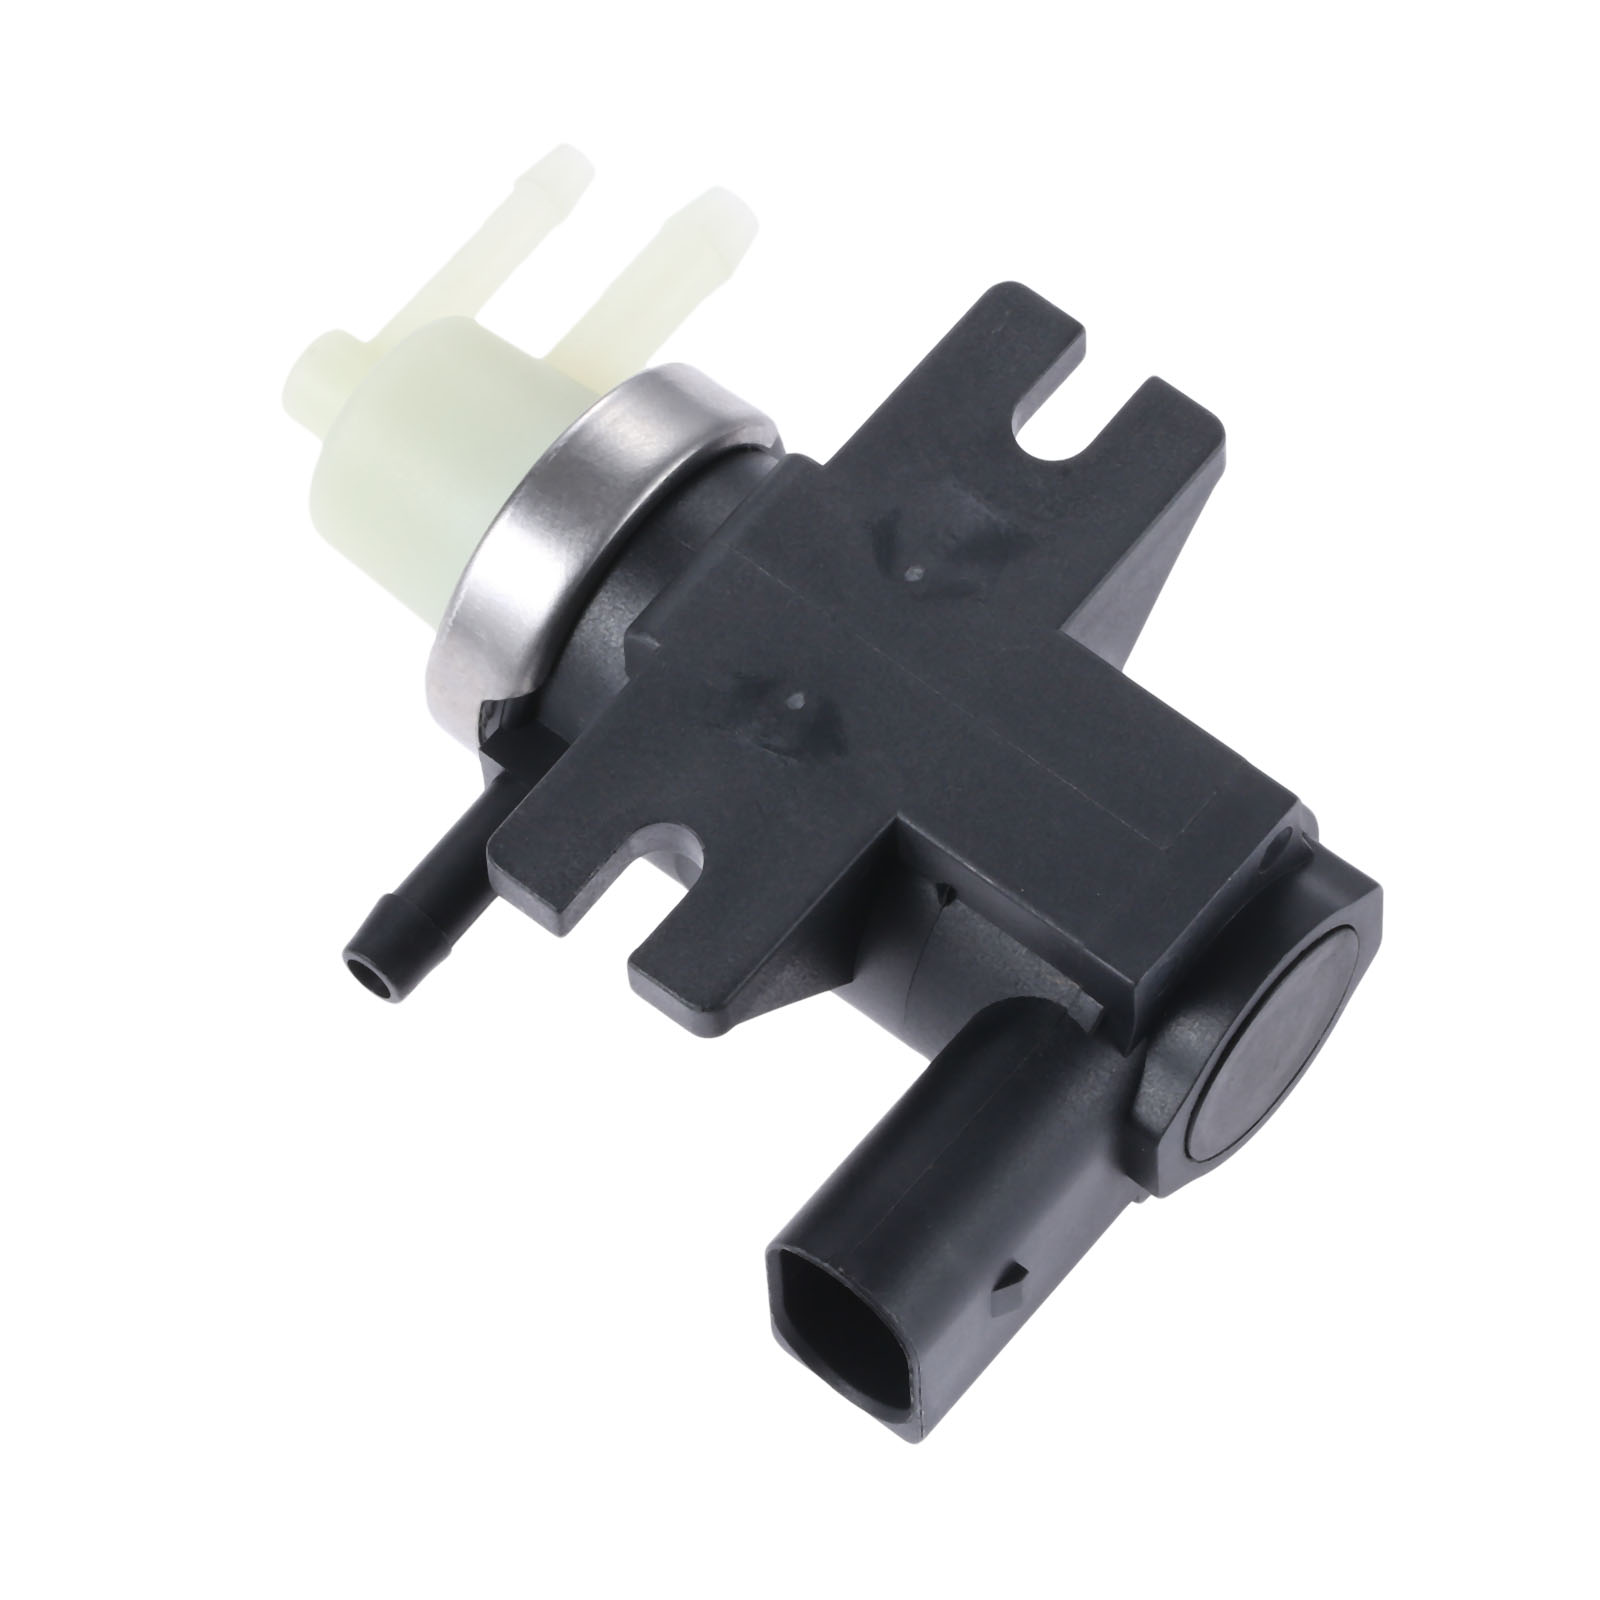 Image 5 - Yetaha 1J0906627A New Boost Pressure Solenoid Converter Valve For VW For Jetta Sedan Wagon TDI Passat Beetle Golf TDI 2000 2006-in Exhaust Gas Recirculation Valve from Automobiles & Motorcycles